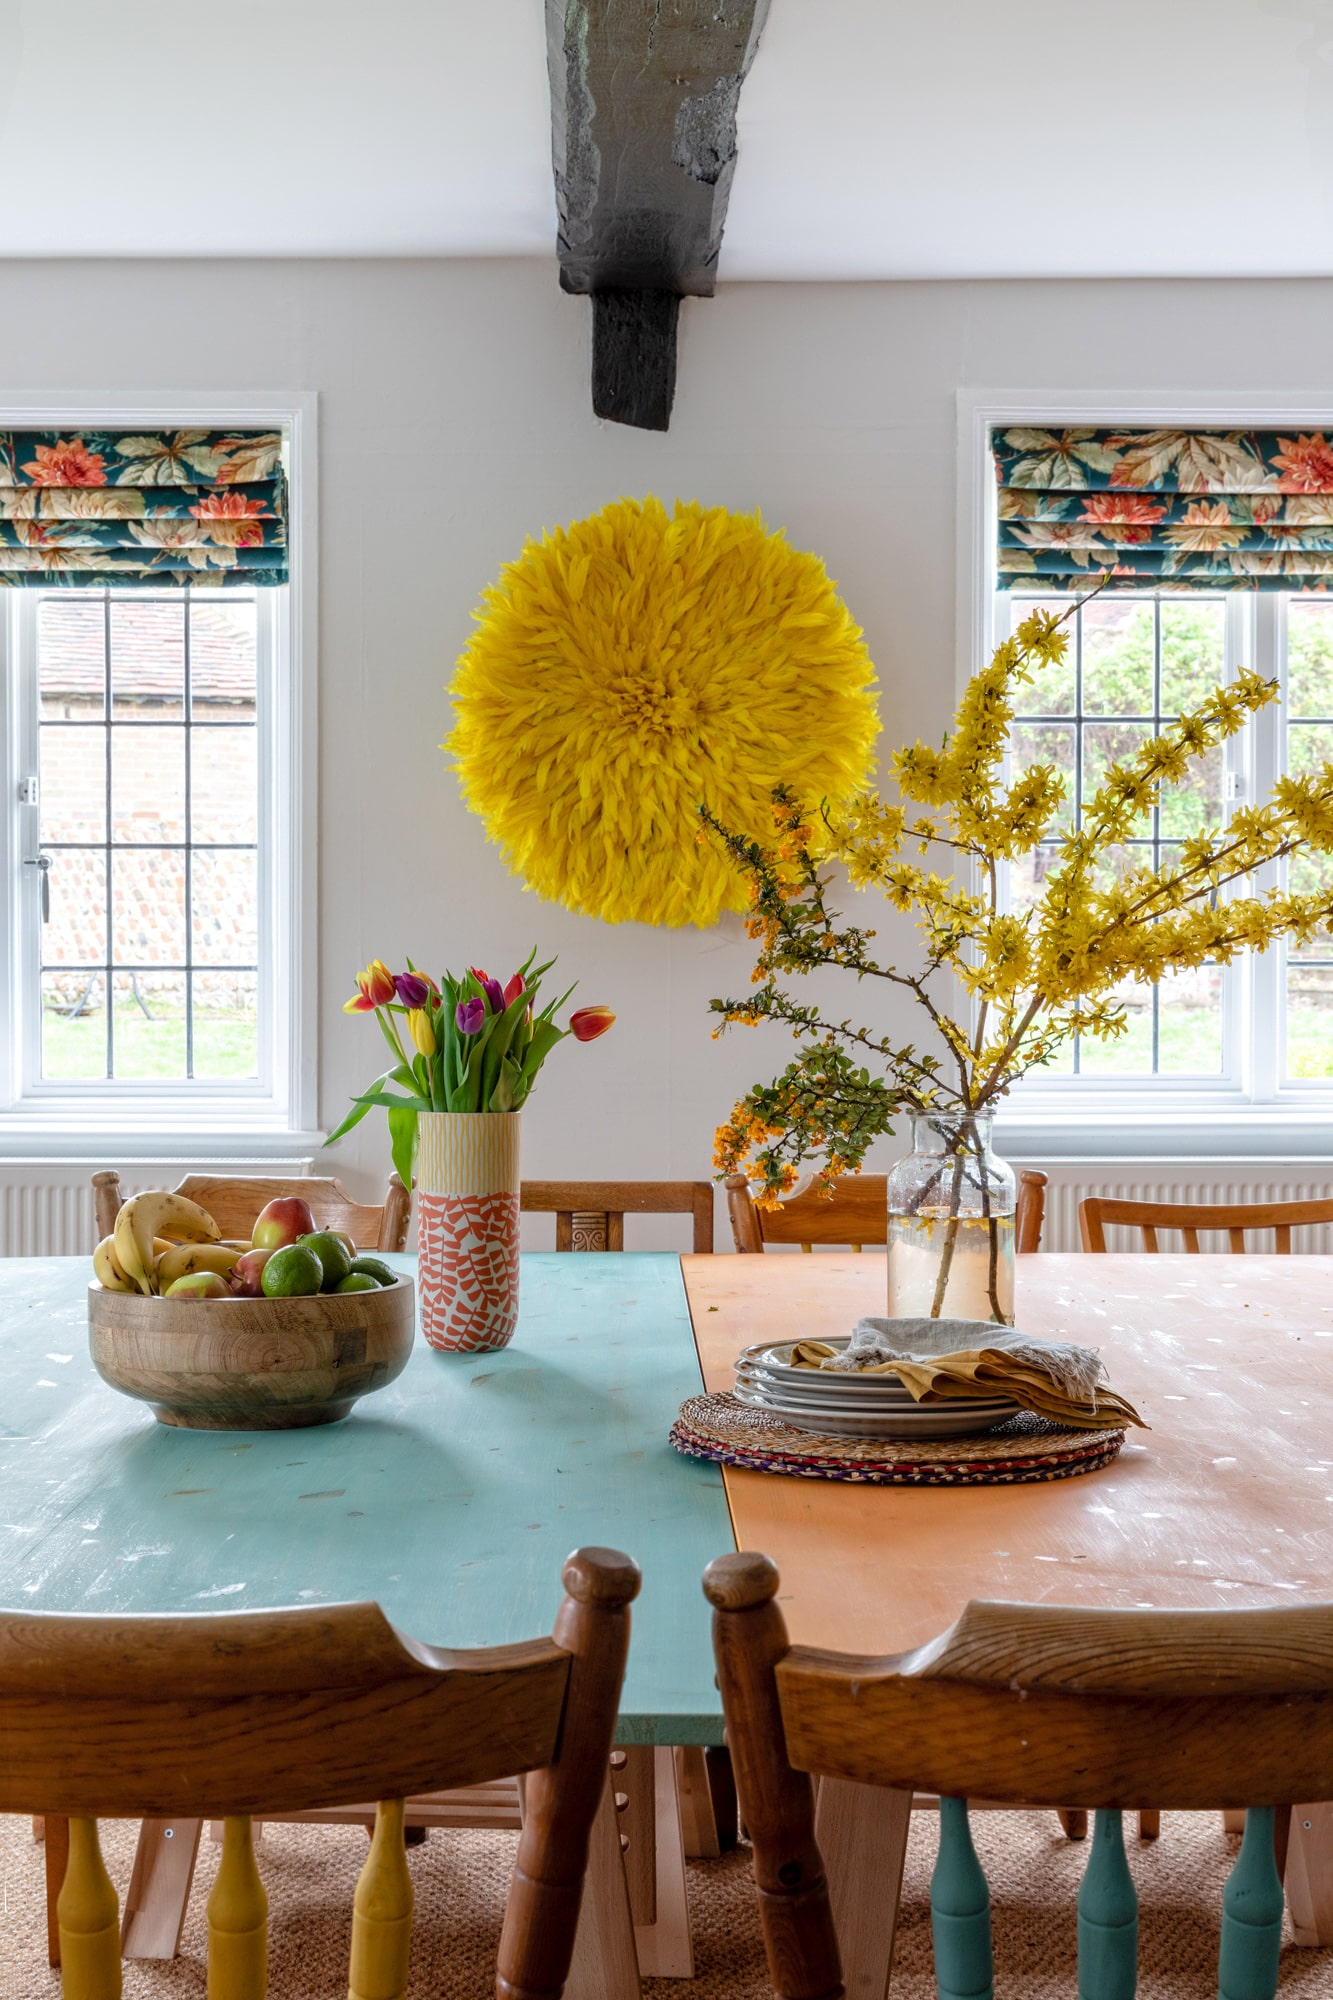 Interior detail photo of a dining room in a farm house: wooden table with v2 vases with vivid flowers, yellow accessory on the wall made of feathers